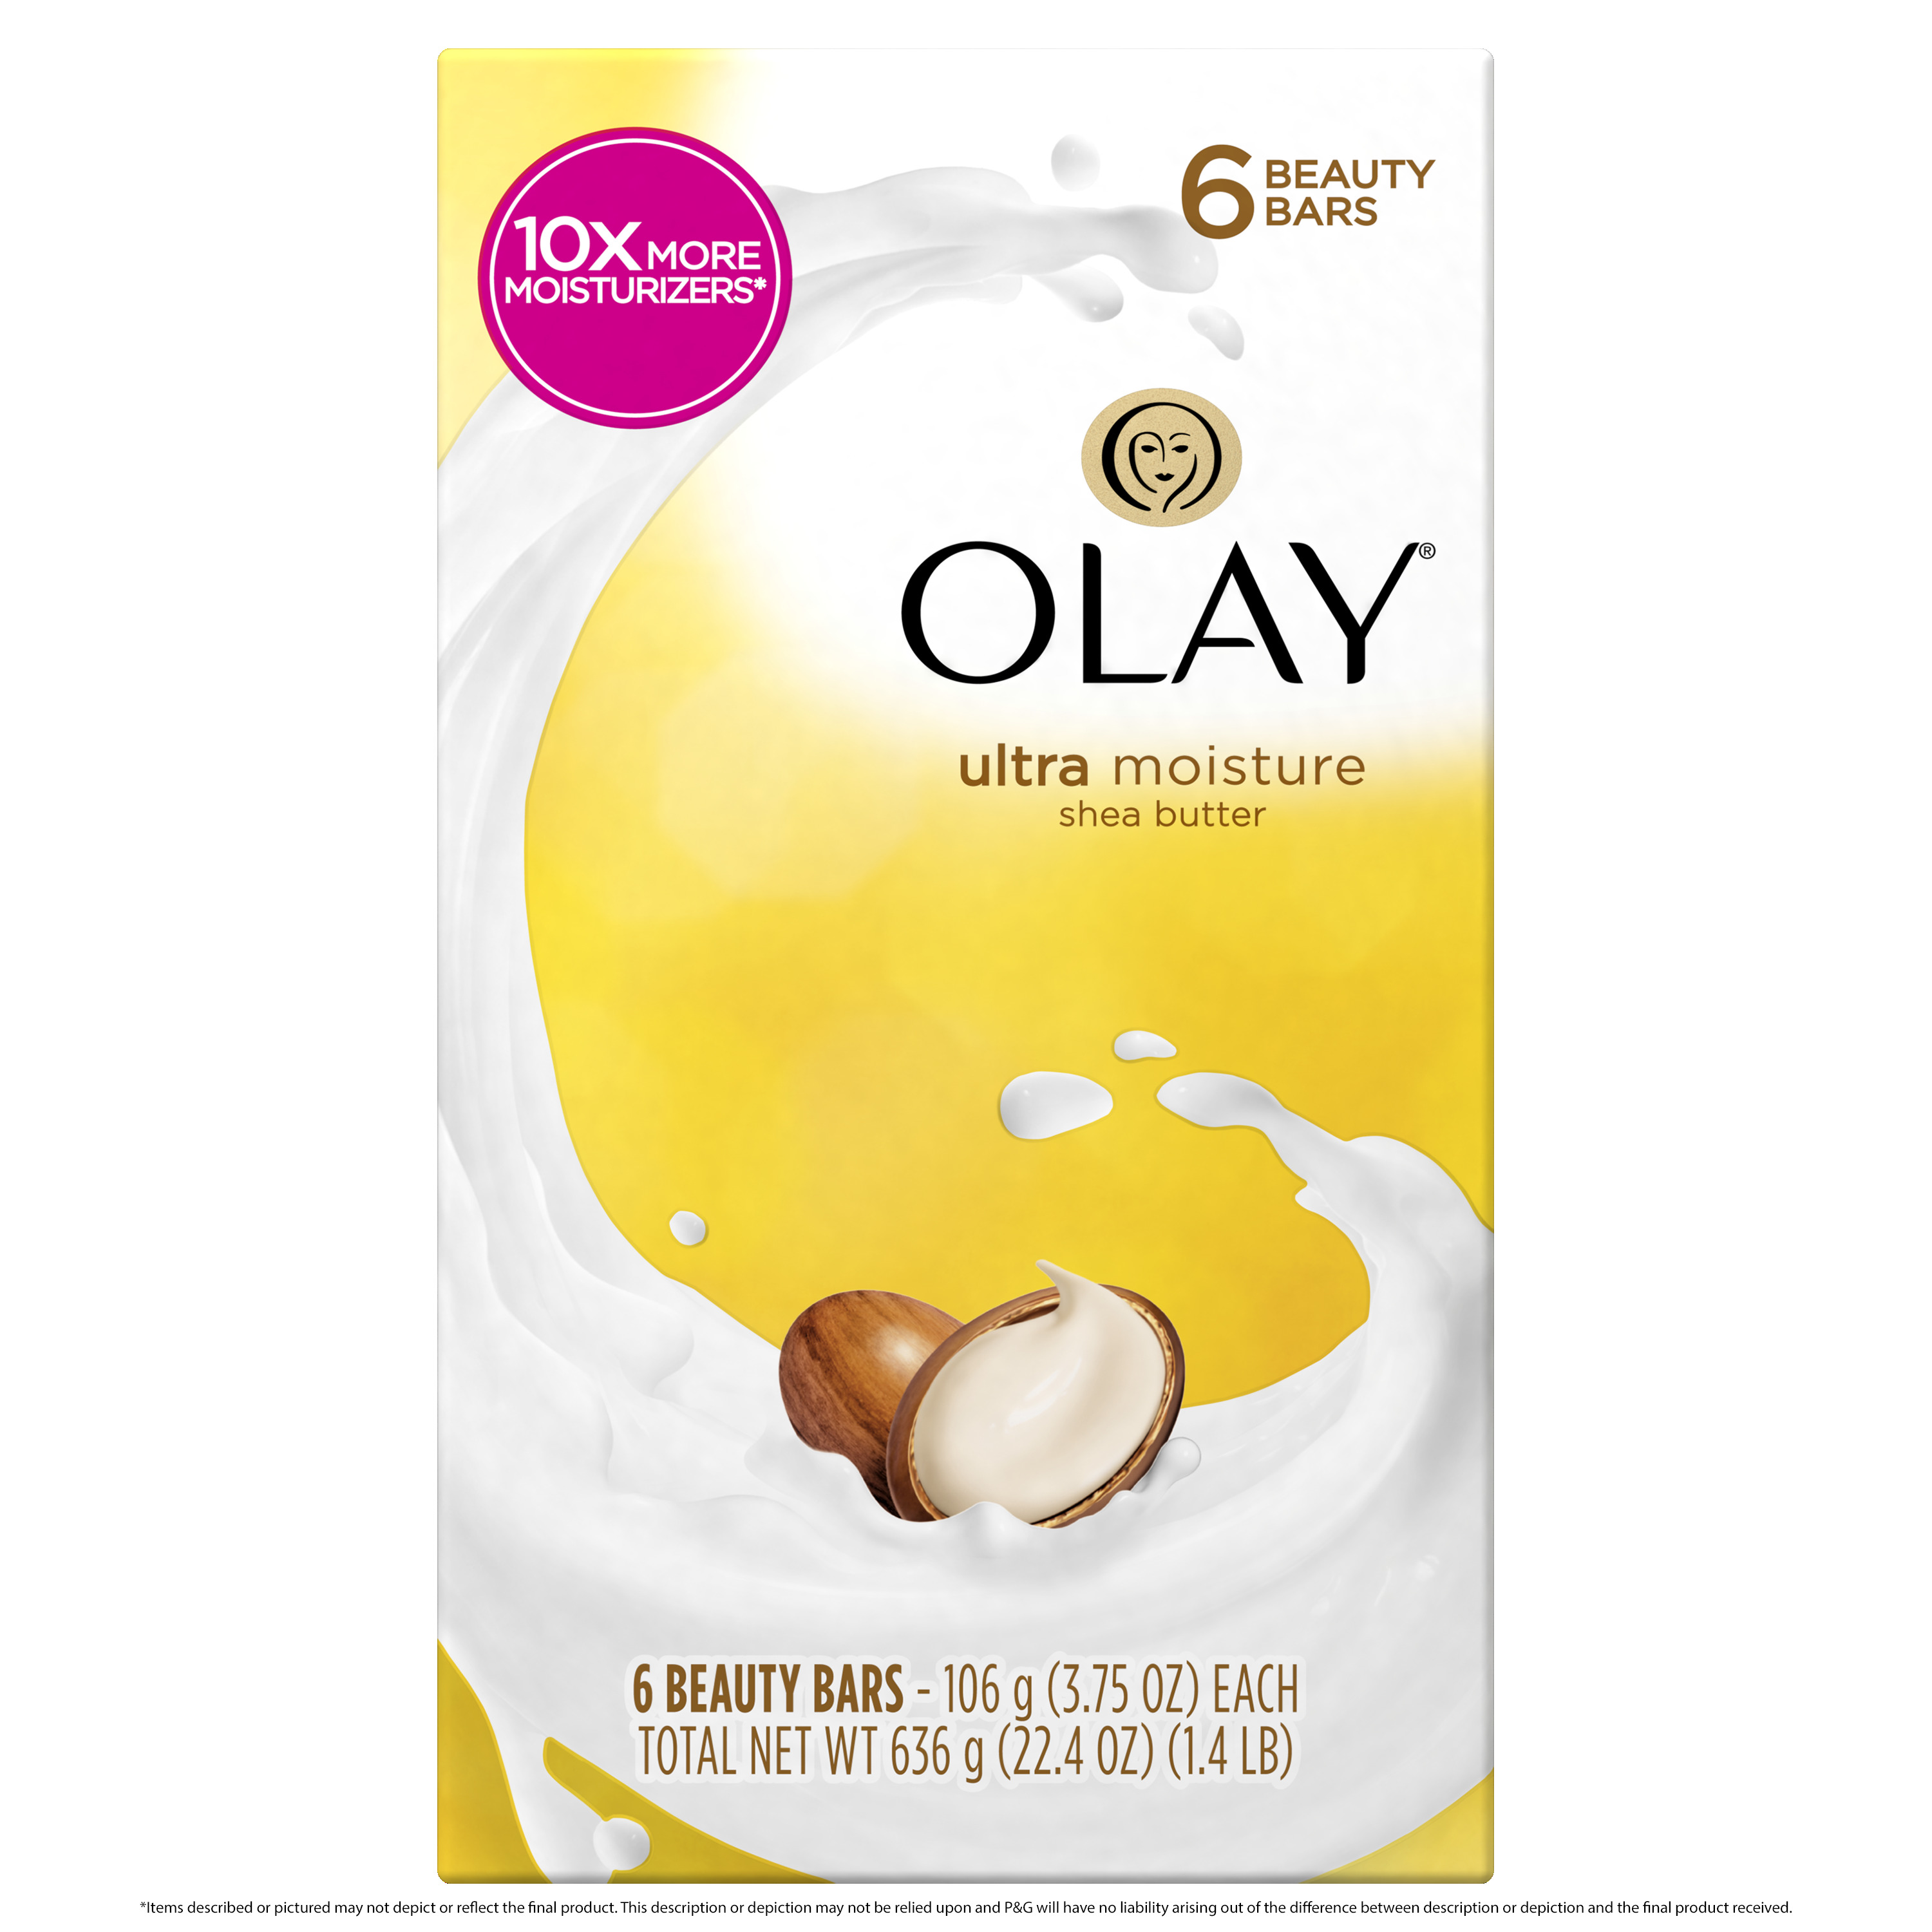 Olay Moisture Outlast Ultra Moisture Shea Butter Beauty Bar 3.75 oz, 6 count